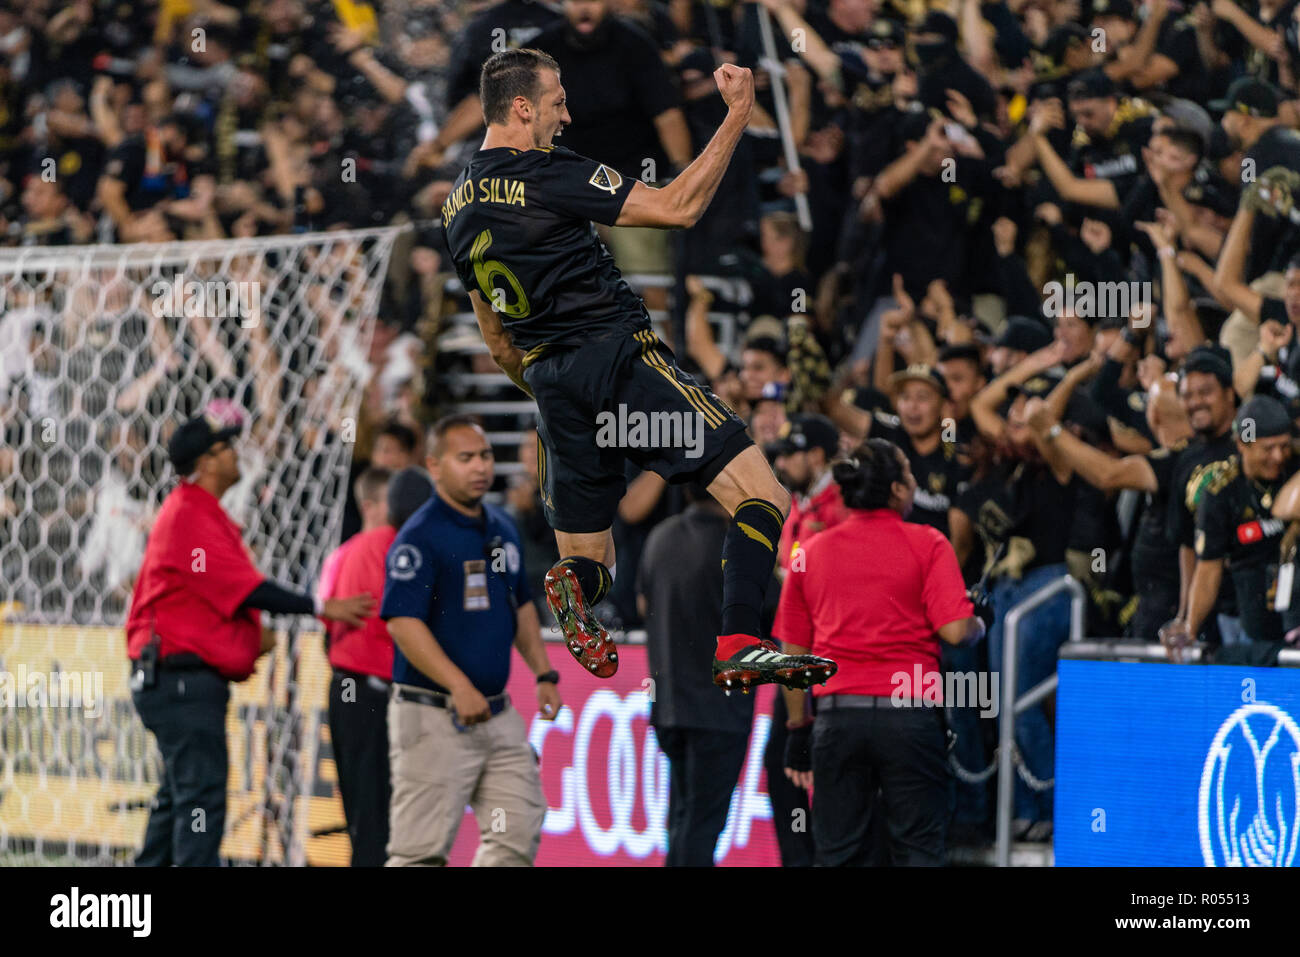 Los Angeles, USA. 1st November 2018. Danilo Silva (6) leaps towards the LAFC supporters after scoring against Real Salt Lake in their playoff bout. LAFC lost the game 3-2, however. Credit: Ben Nichols/Alamy Live News - Stock Image